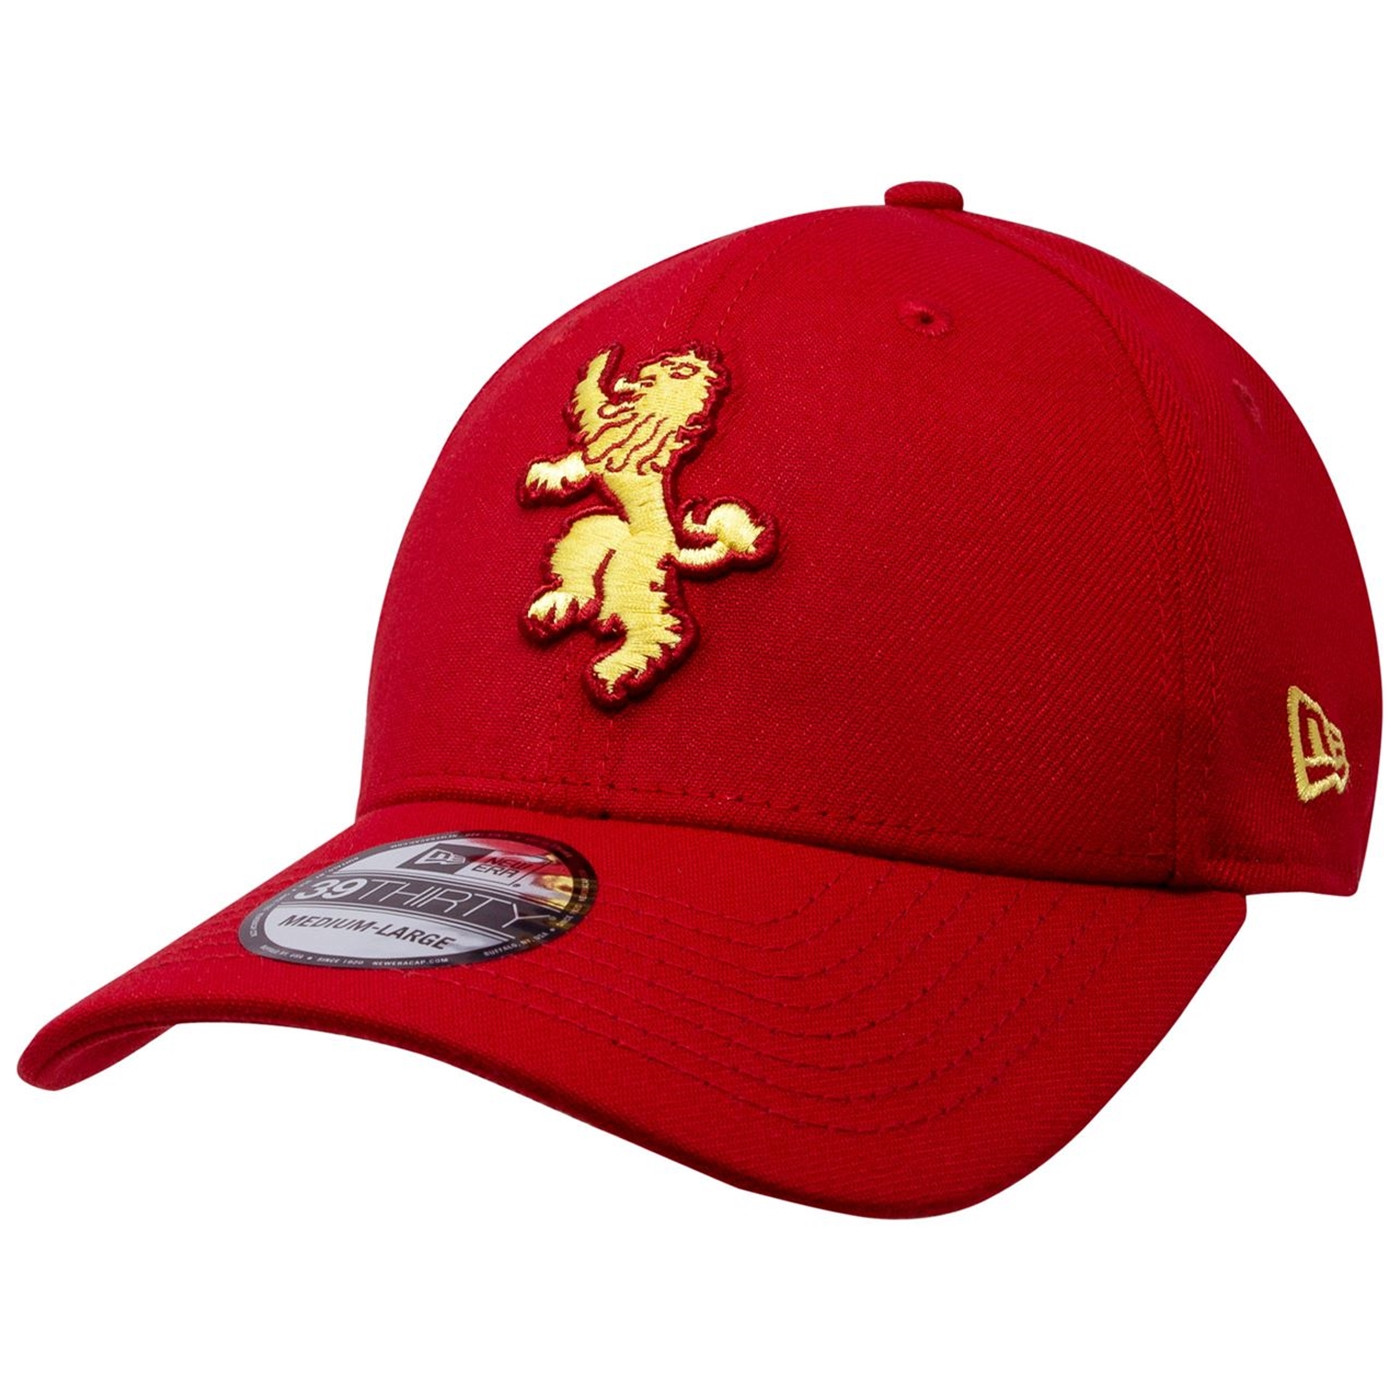 Game of Thrones House Lannister 39Thirty Fitted New Era Hat